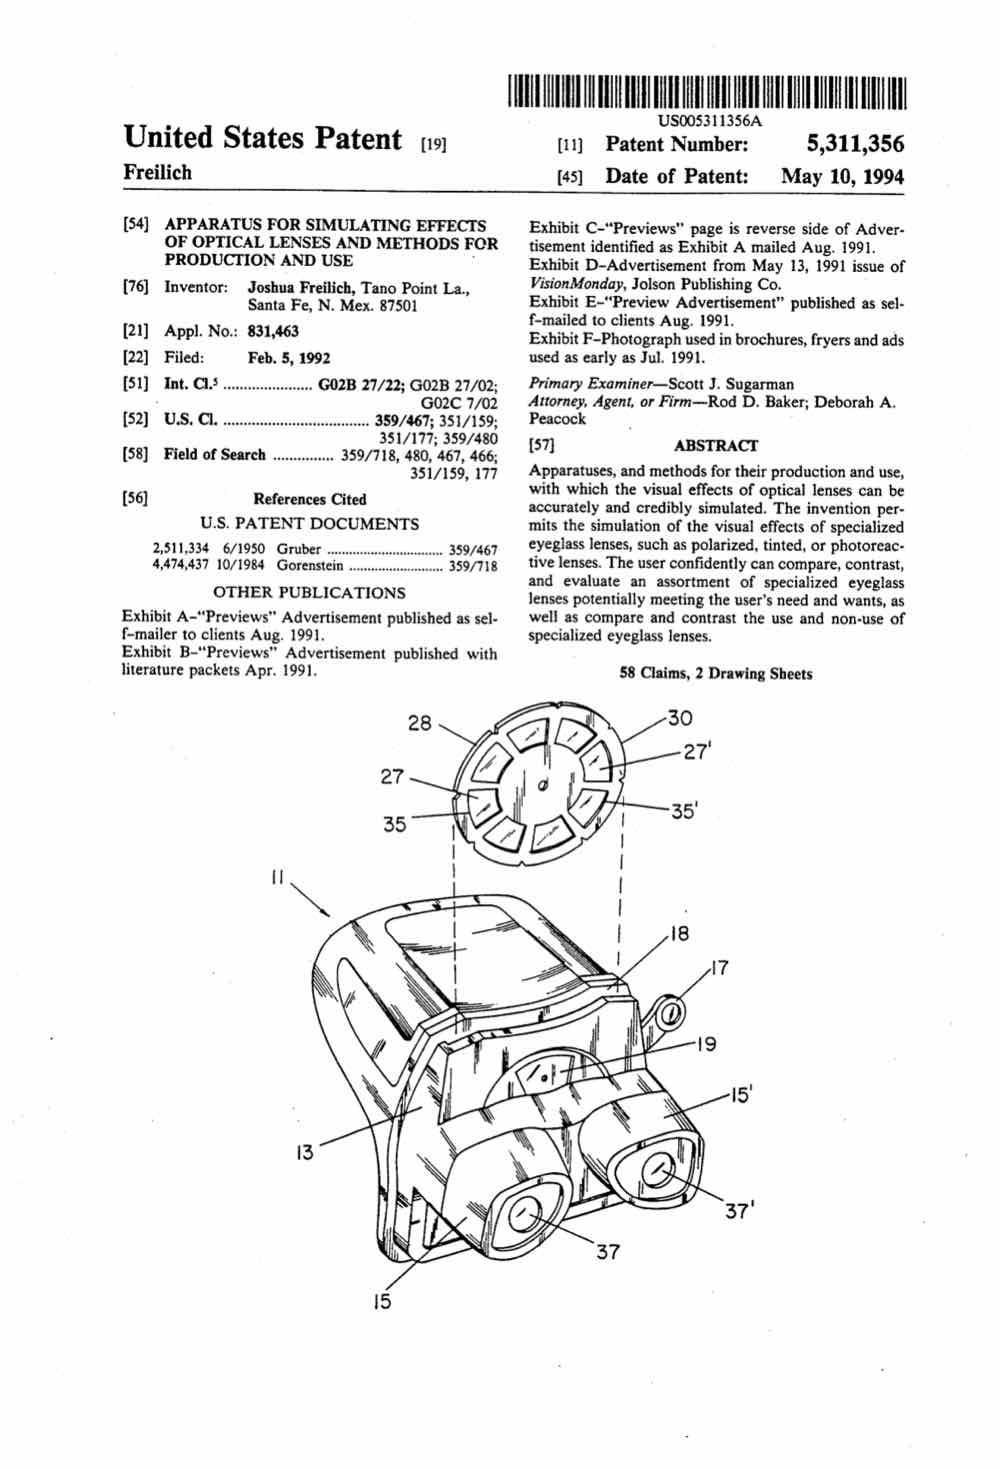 Diagnostics And Medical Technology Peacock Law Pc Part 5 204412 Engine Diagram Apparatus For Simulating Effects Of Optical Lenses Methods Production Use 5311356